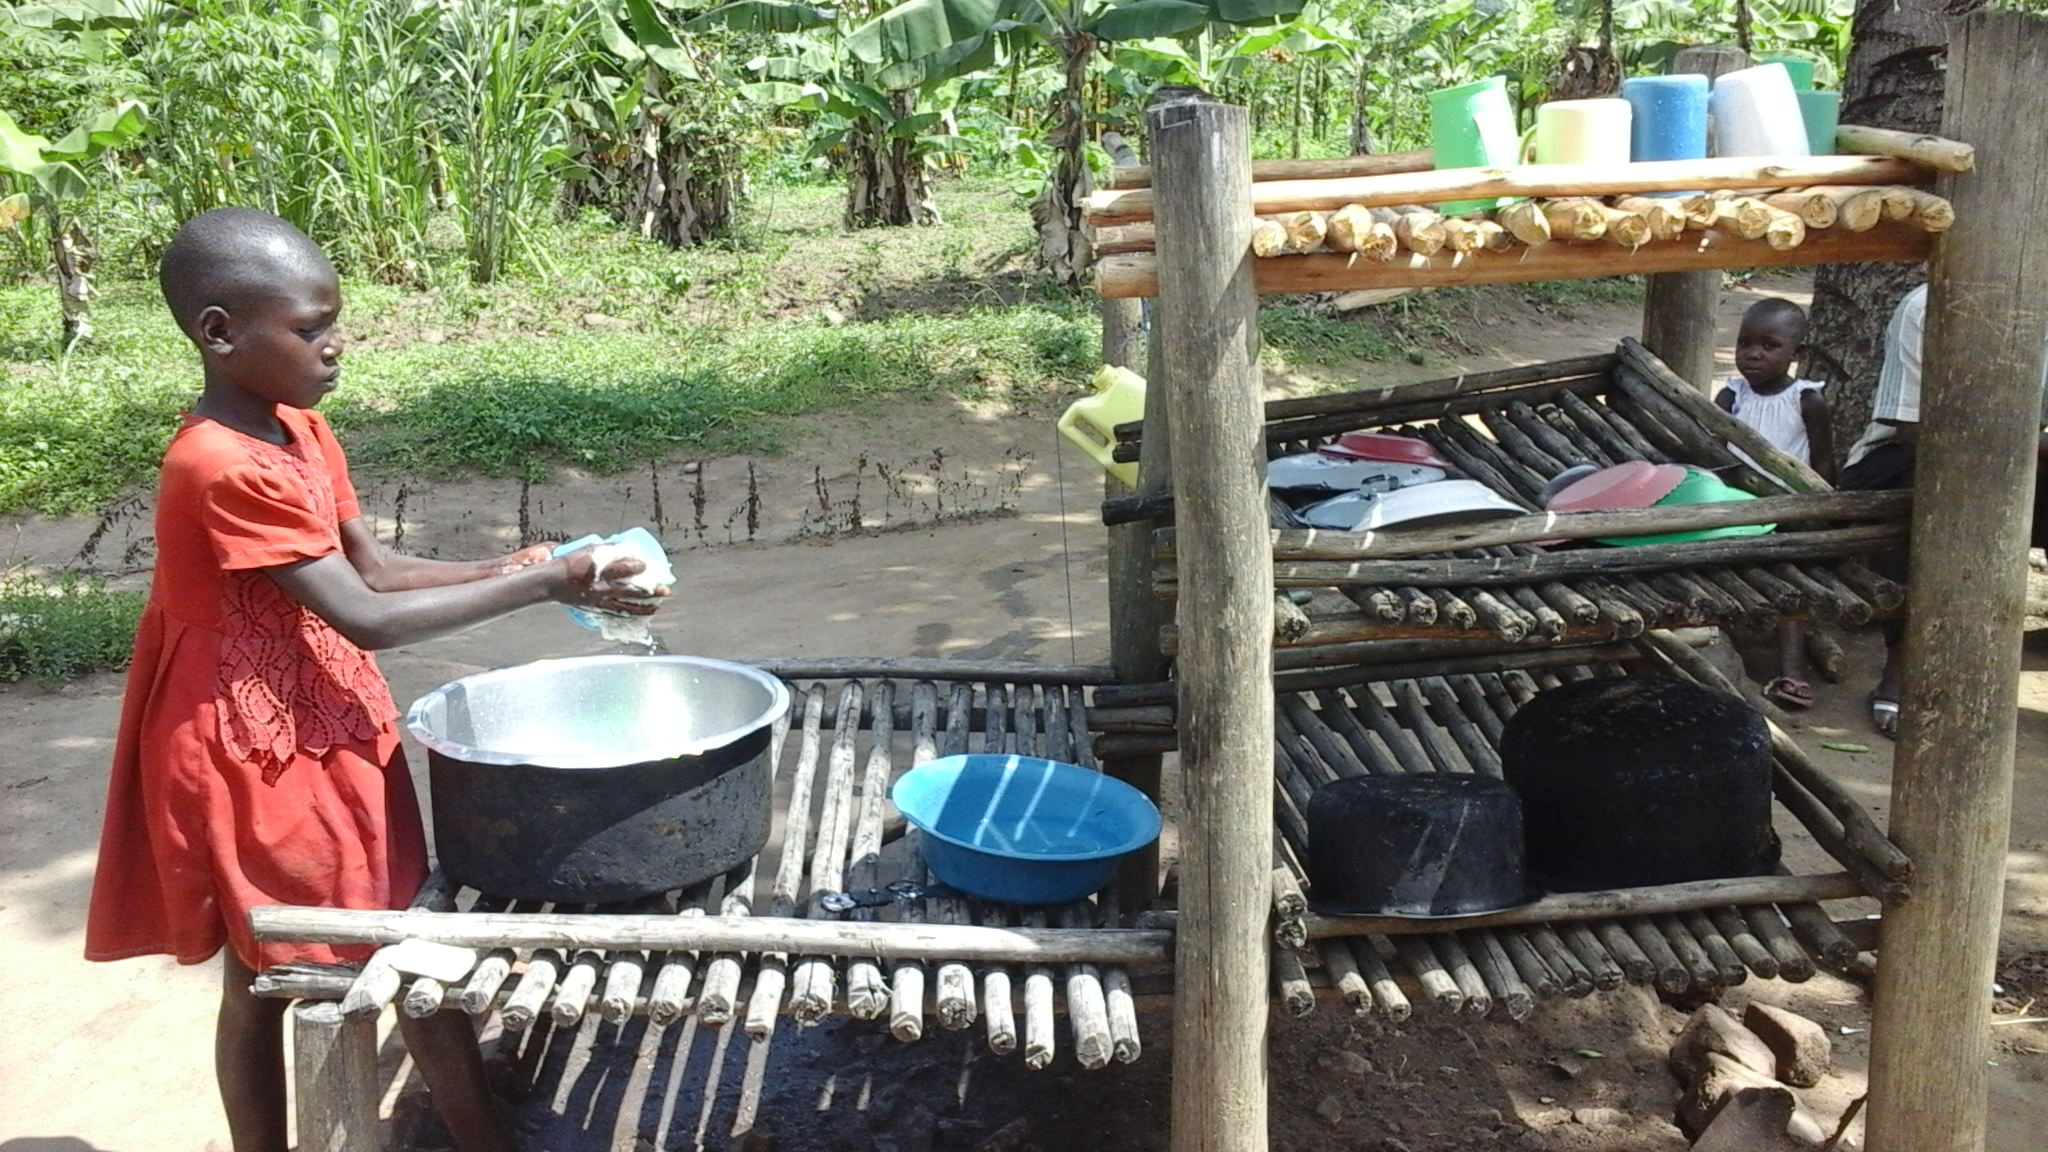 A beneficiary washes dishes using an improved dish rack.